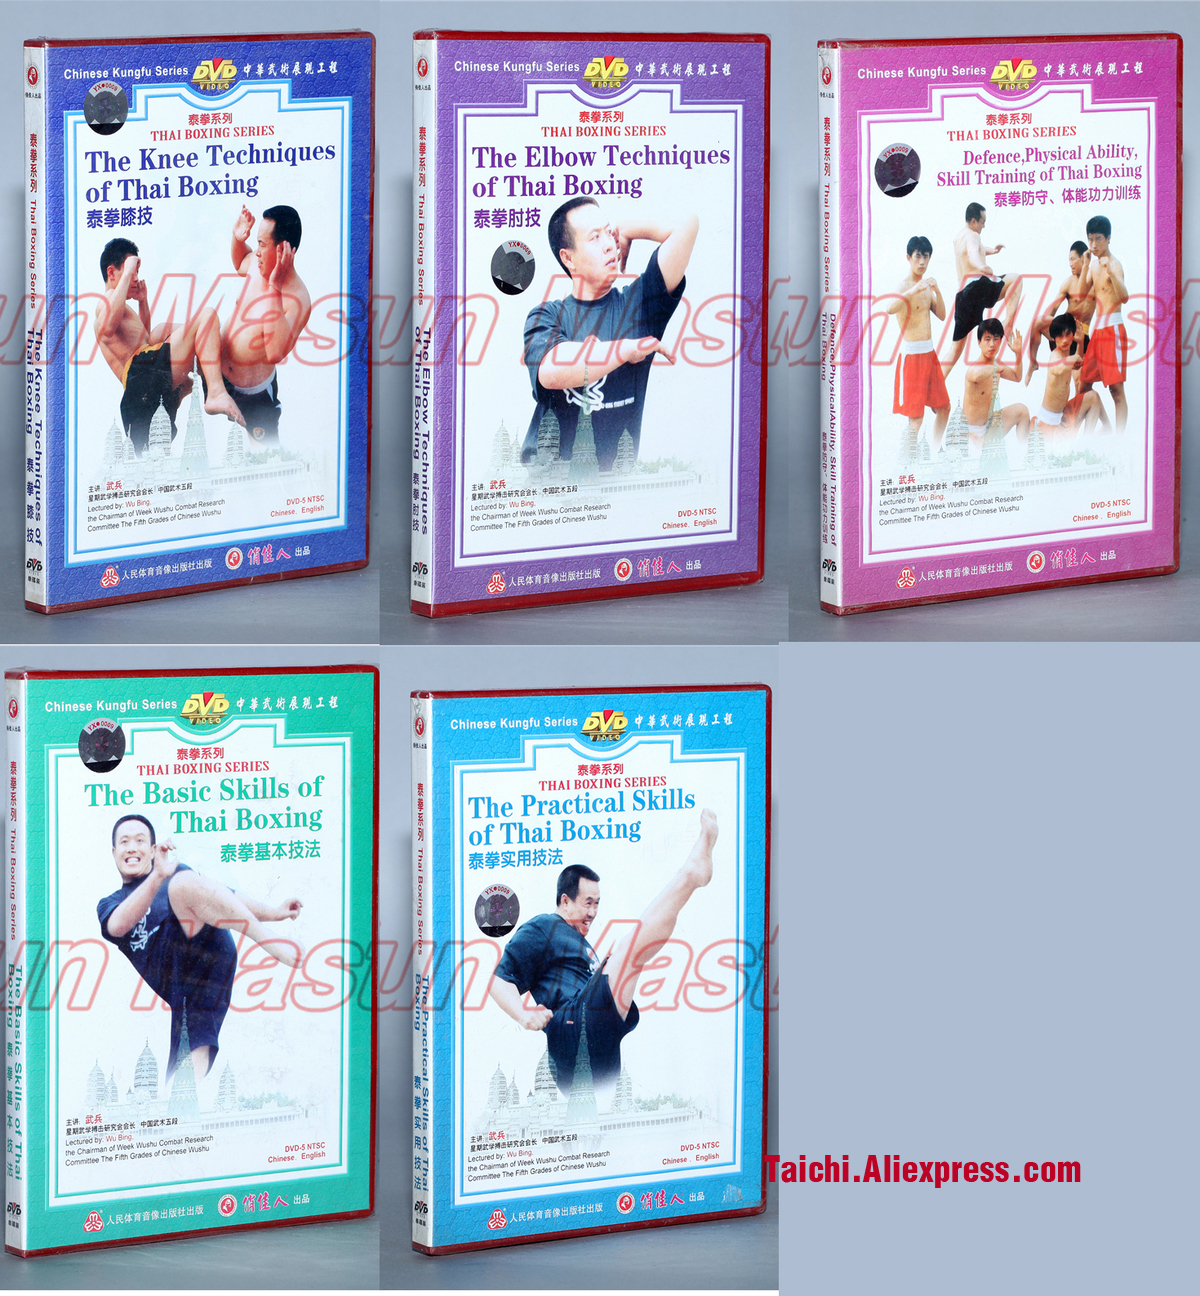 Thai Boxing Series 5 DVD,Martial Arts Teaching Disc,English Subtitle,Kness ,Elbow Technique,Basic Skill,defence,Practical Skills